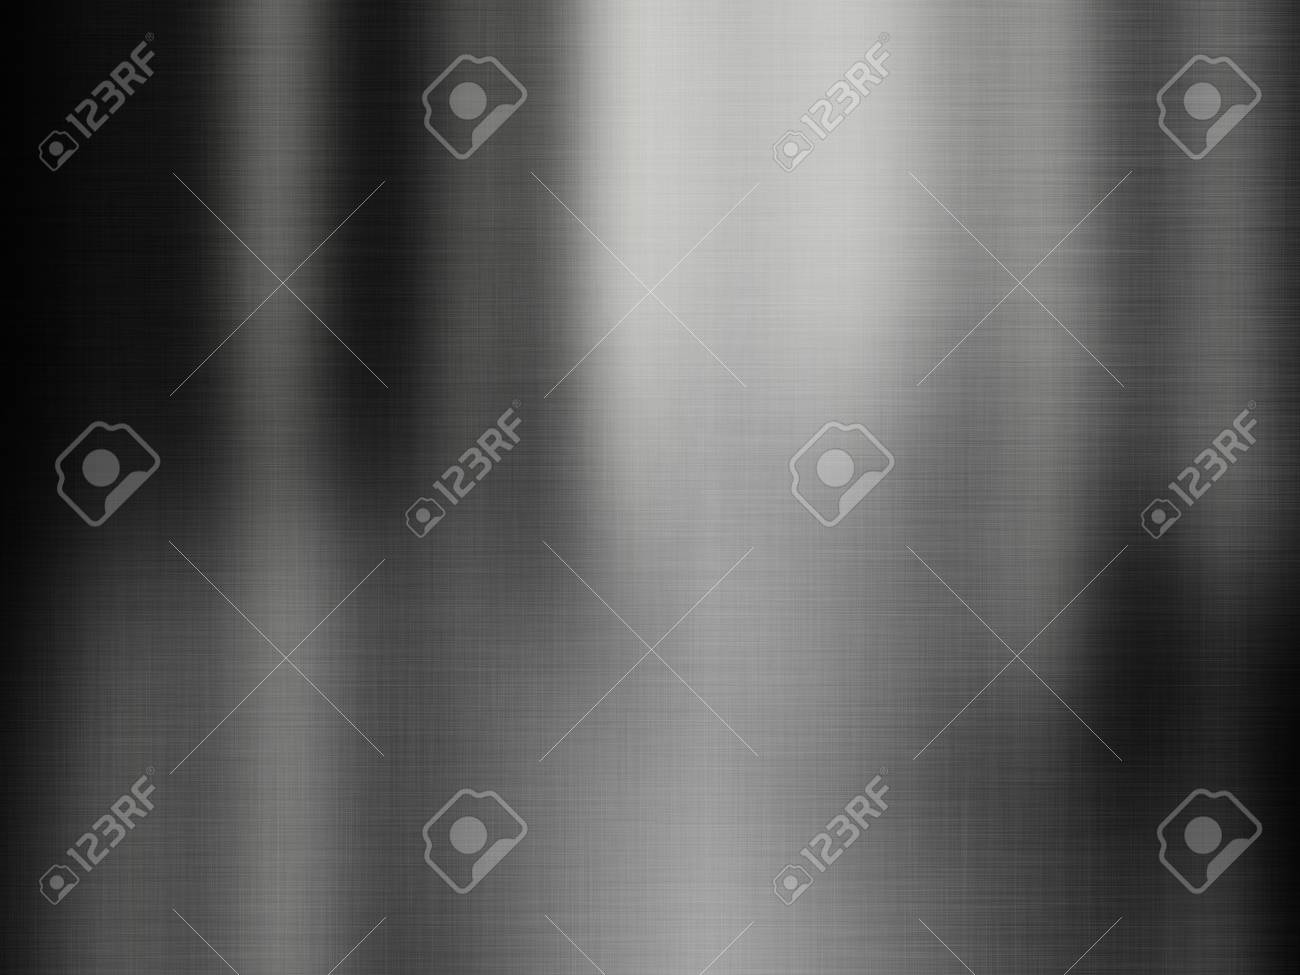 Stainless steel texture or metal texture background Banque d'images - 75076762